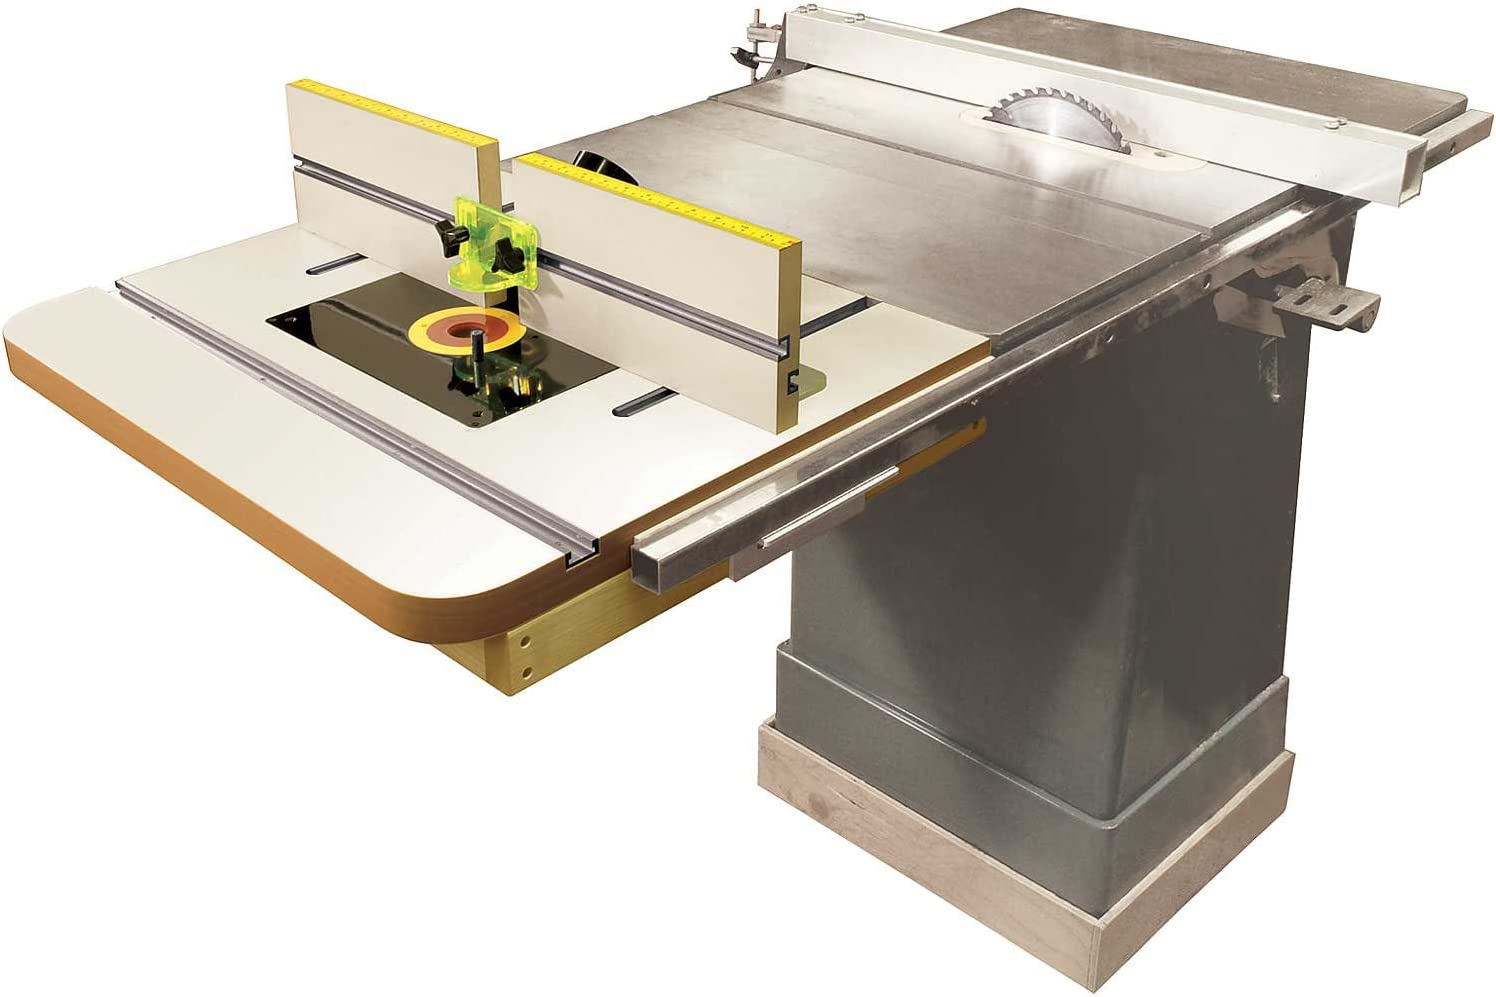 MLCS 2394 Extension Router Table Top /& Fence with Universal Router Plate